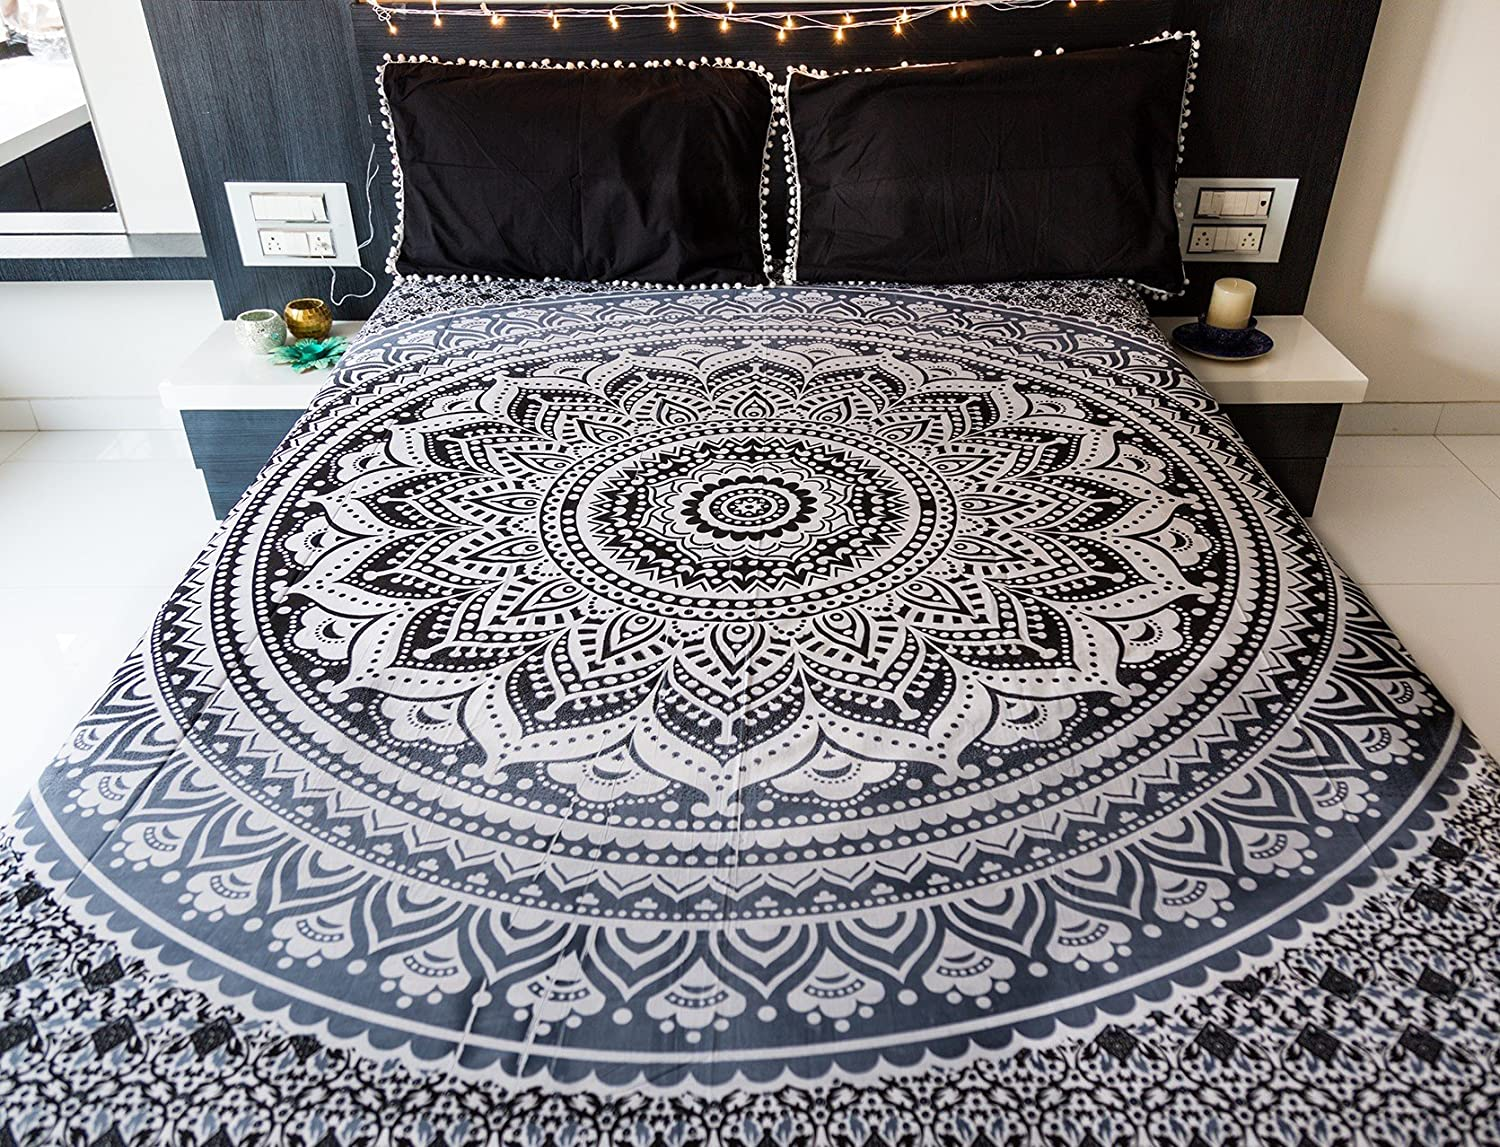 Indie Pop Mandala Tapestry Bedding with Pillow Covers, Indian Bohemian Hippie Tapestry Wall Hanging, Hippy Blanket or Beach Throw, Mandala Ombre Bedspread for Bedroom, Black Gray Queen Size Boho Decor Folkulture FMT09